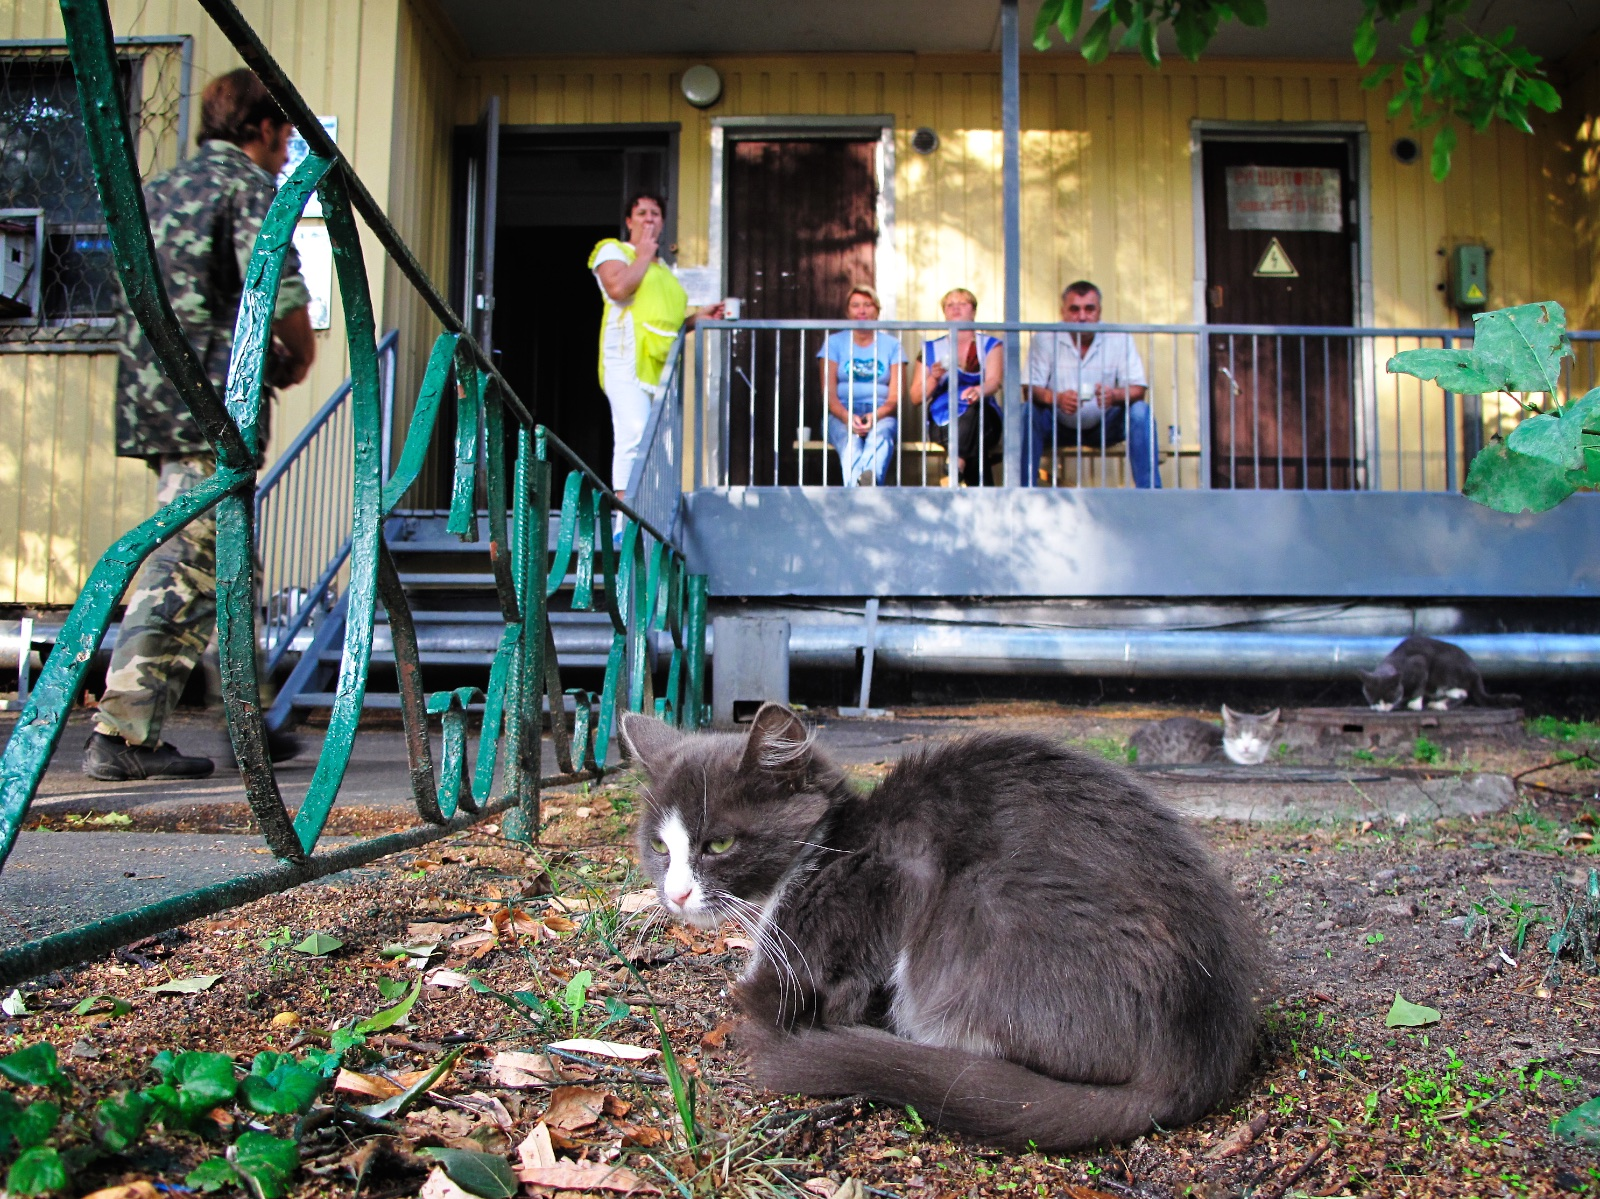 A bored looking cat sits in front of some workers on the verandah of a single storey building